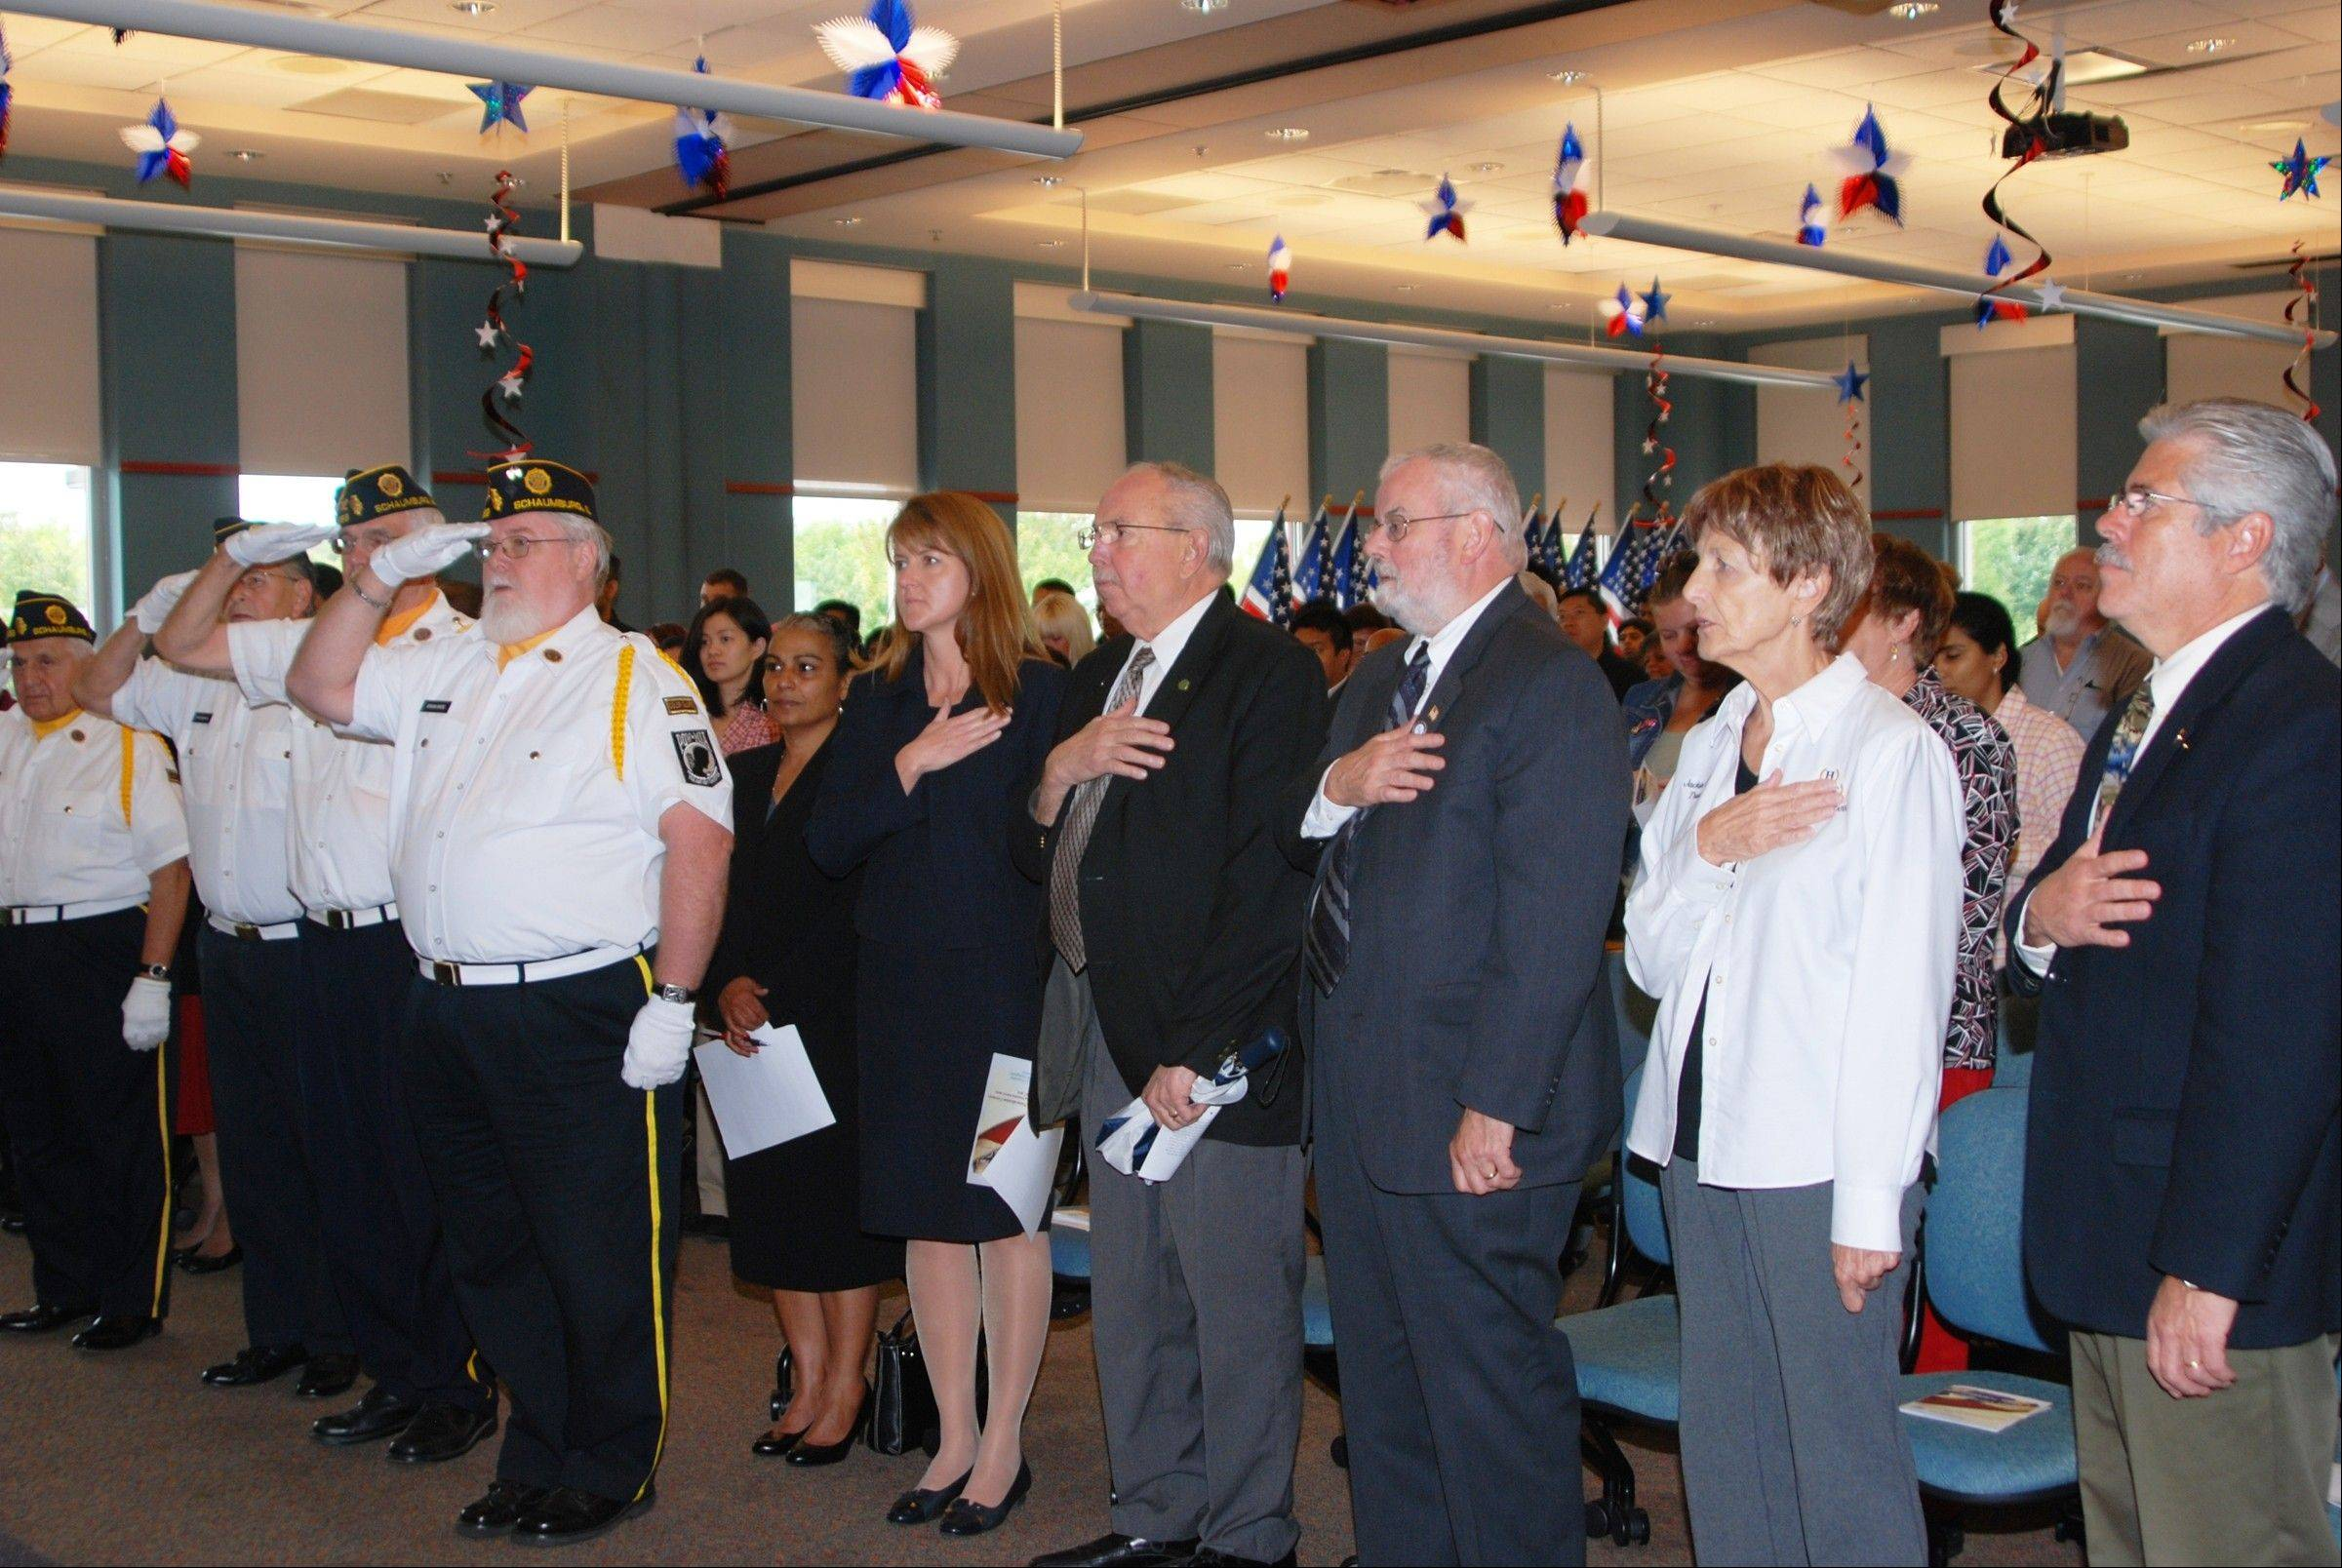 New U.S. citizens and special guests stand for the Pledge of Allegiance during the Sept. 21 ceremony.